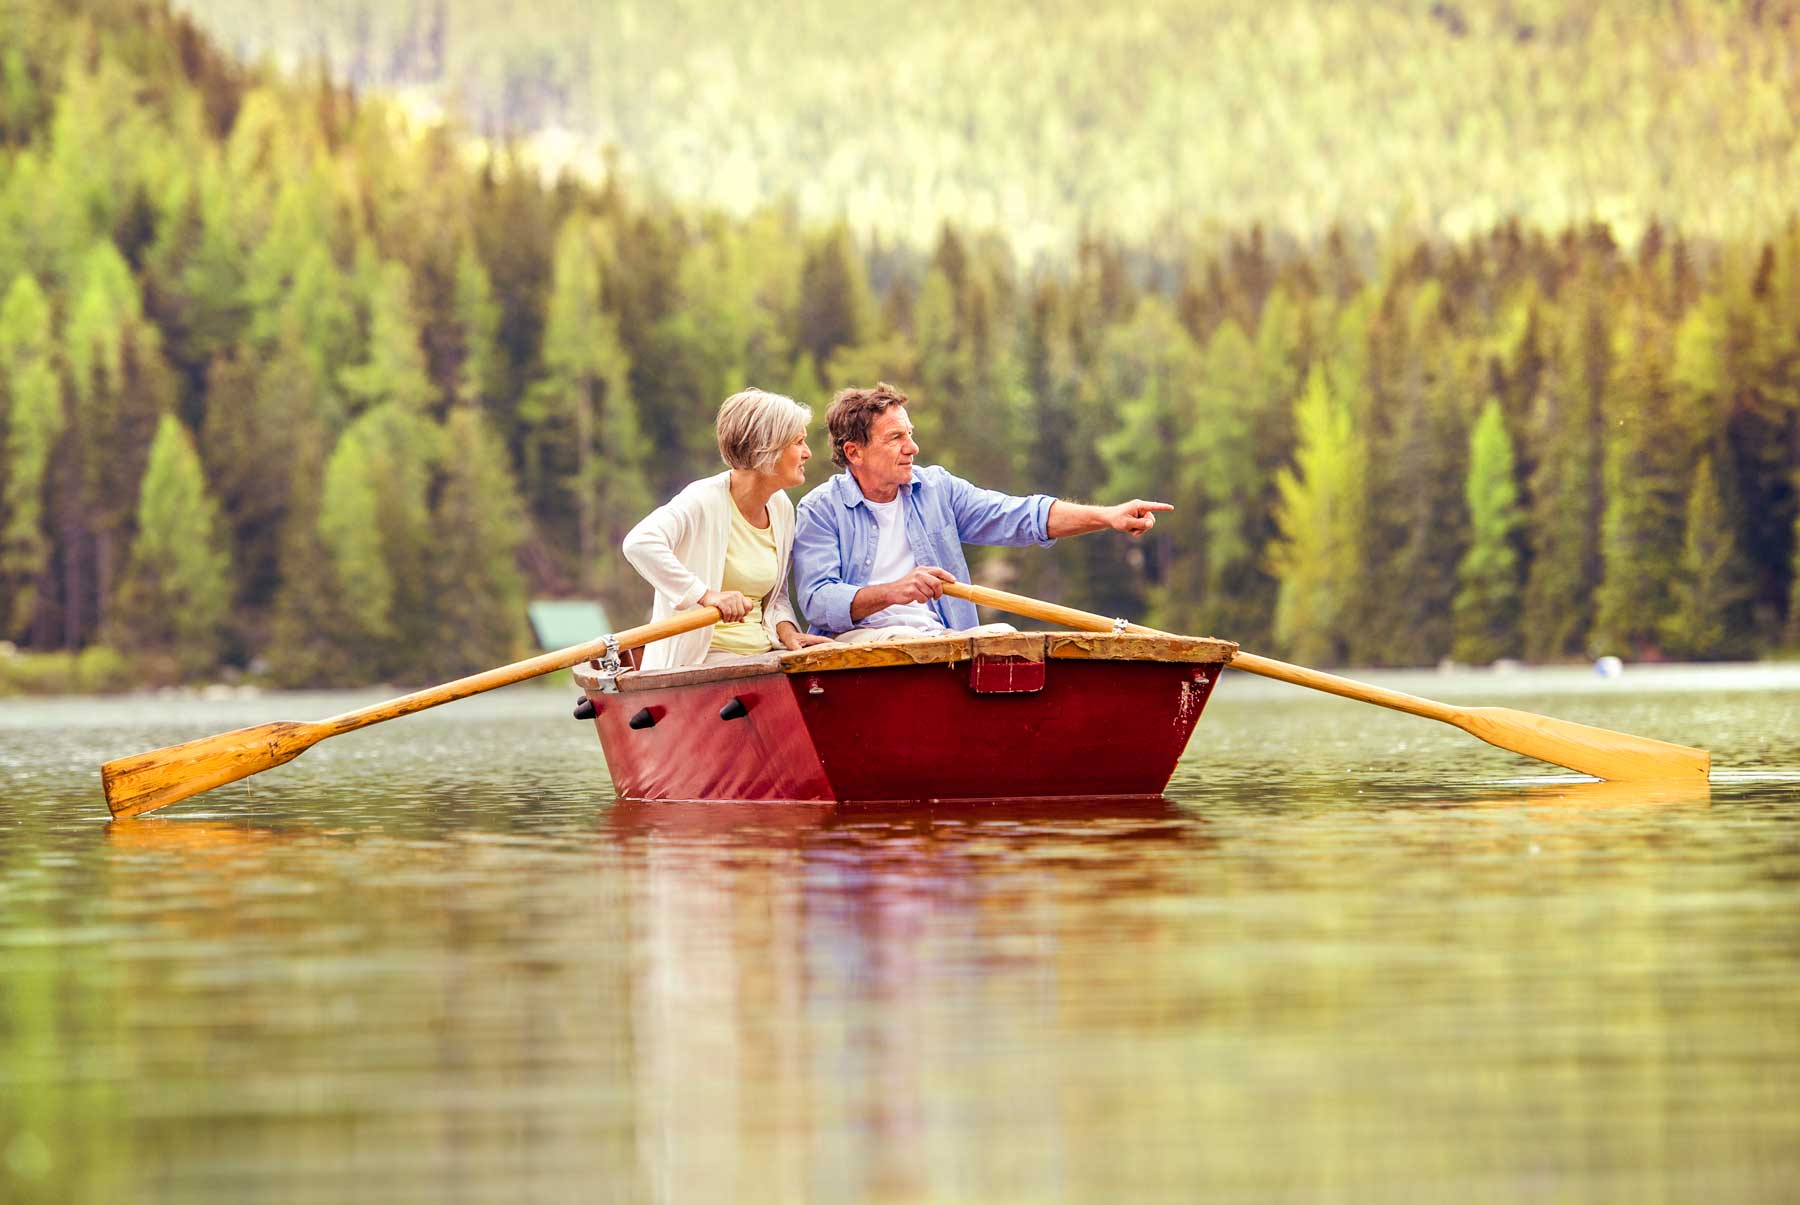 Row your own boat! Springwater Hill is a lake community with access to all the joys of lake living